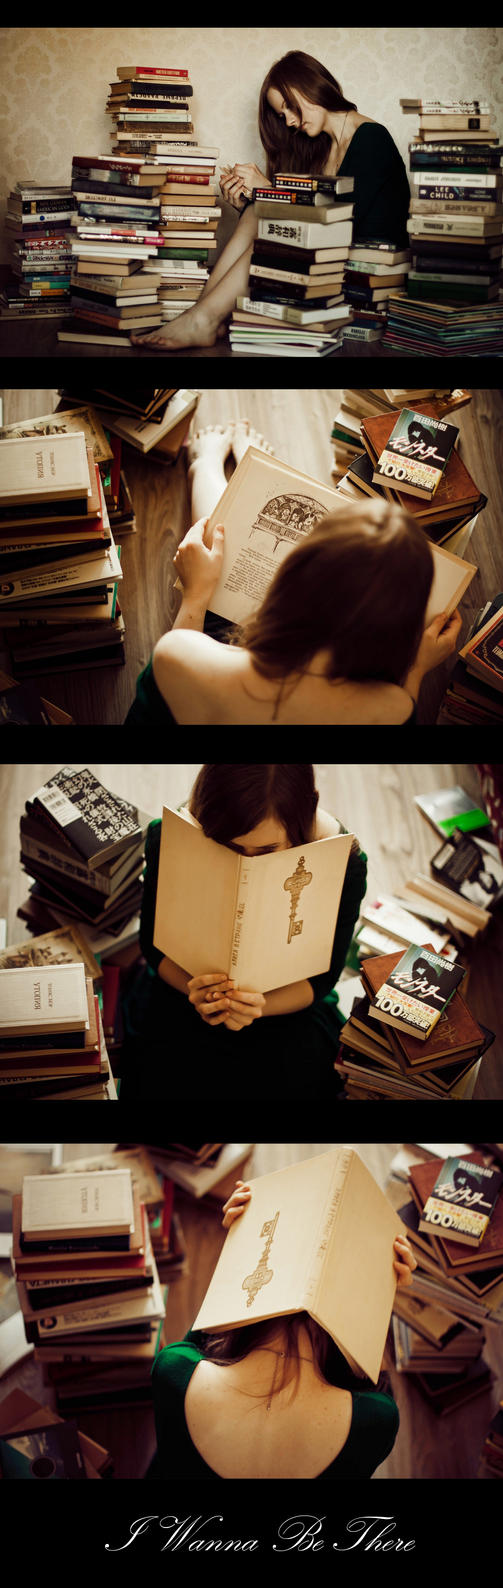 In the book by Lady-I-Hellsing